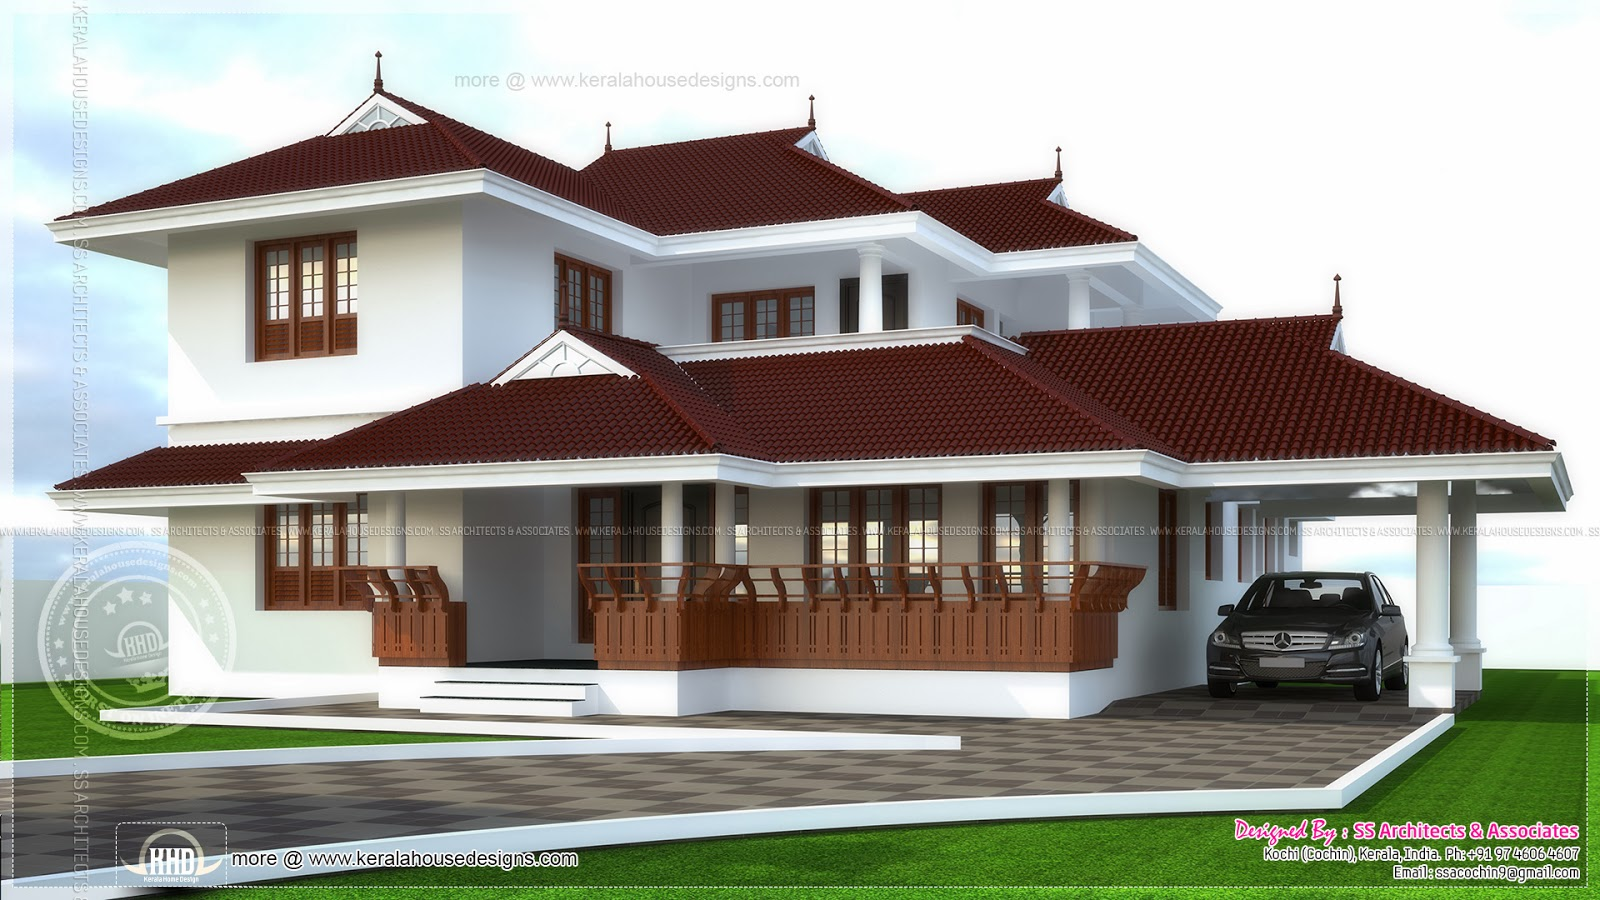 October 2013 kerala home design and floor plans for Kerala home designs pictures